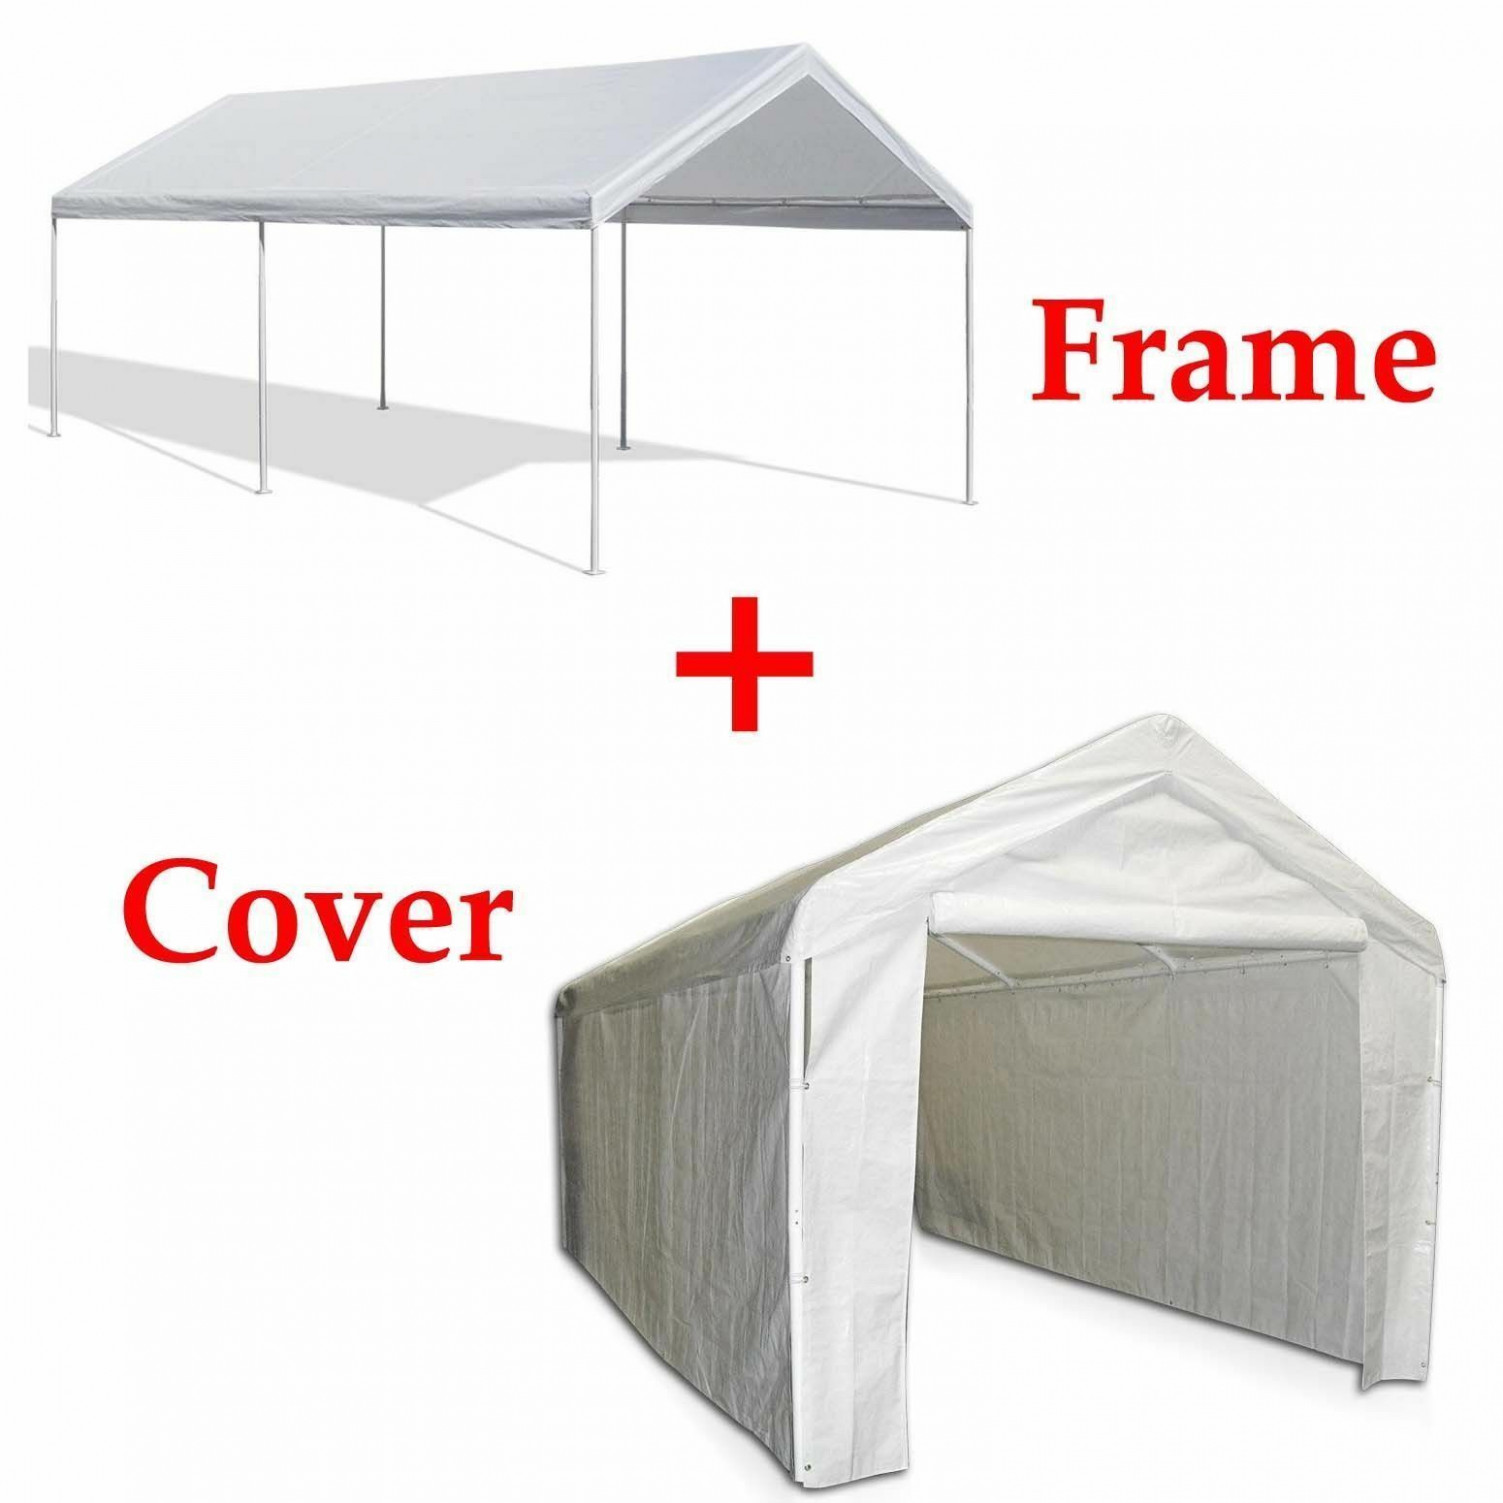 12x12 Outdoor Carport Canopy Car Shelter Frame Garage Cover Tent Portable Gazebo Used Carport Canopy